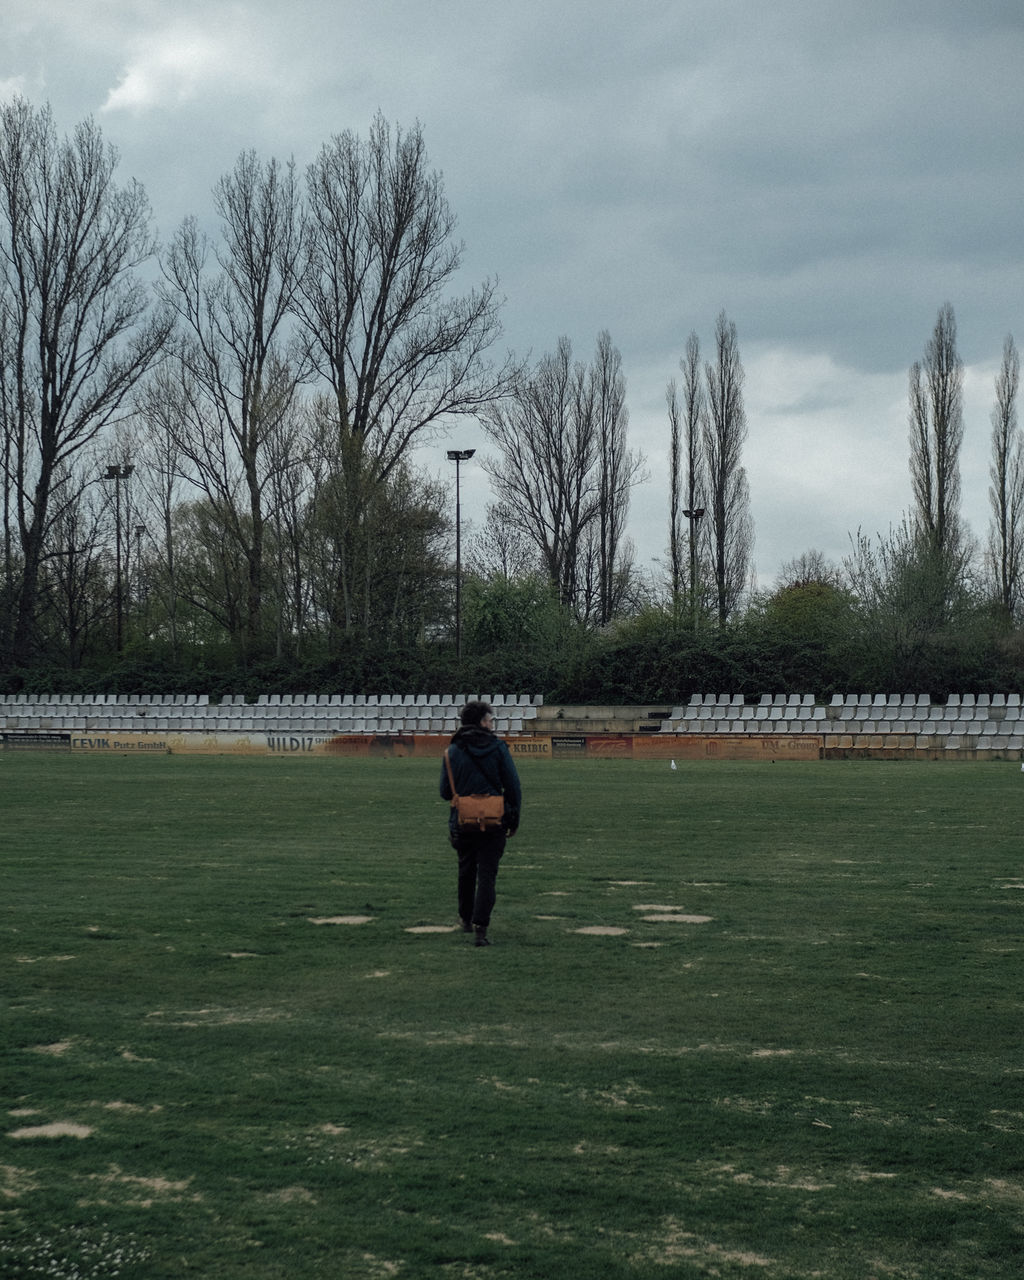 FULL LENGTH REAR VIEW OF MAN STANDING ON FIELD